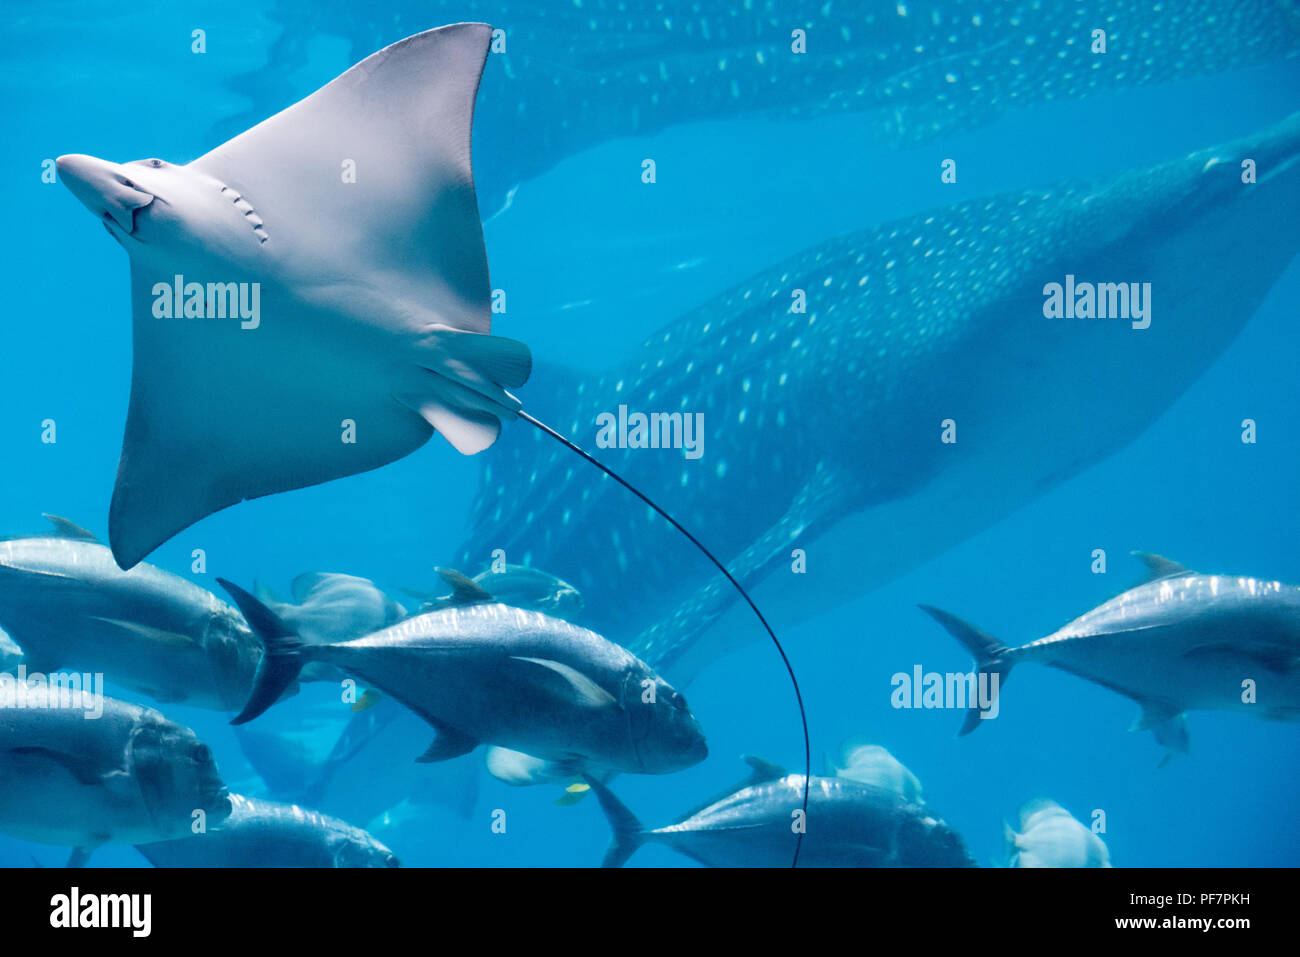 Spotted Eagle Ray et massif requin-baleine à l'Aquarium de Géorgie dans le centre-ville d'Atlanta, Géorgie. (USA) Photo Stock